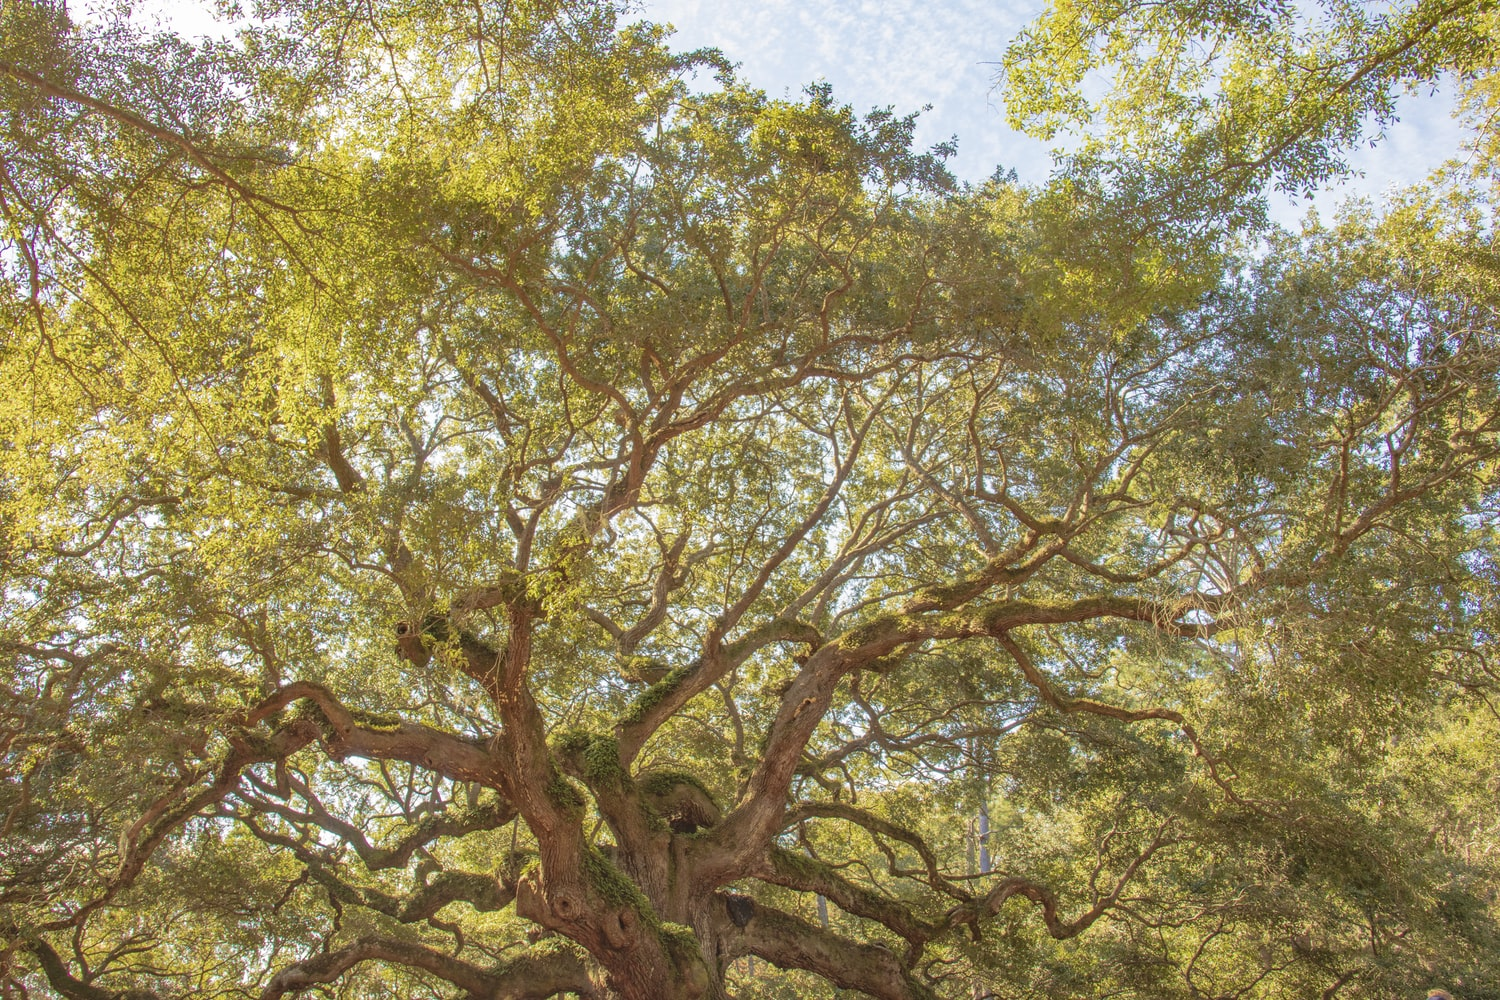 Restoring the Oaks and Our Connection to the Earth: An Interview with Jolie Elan